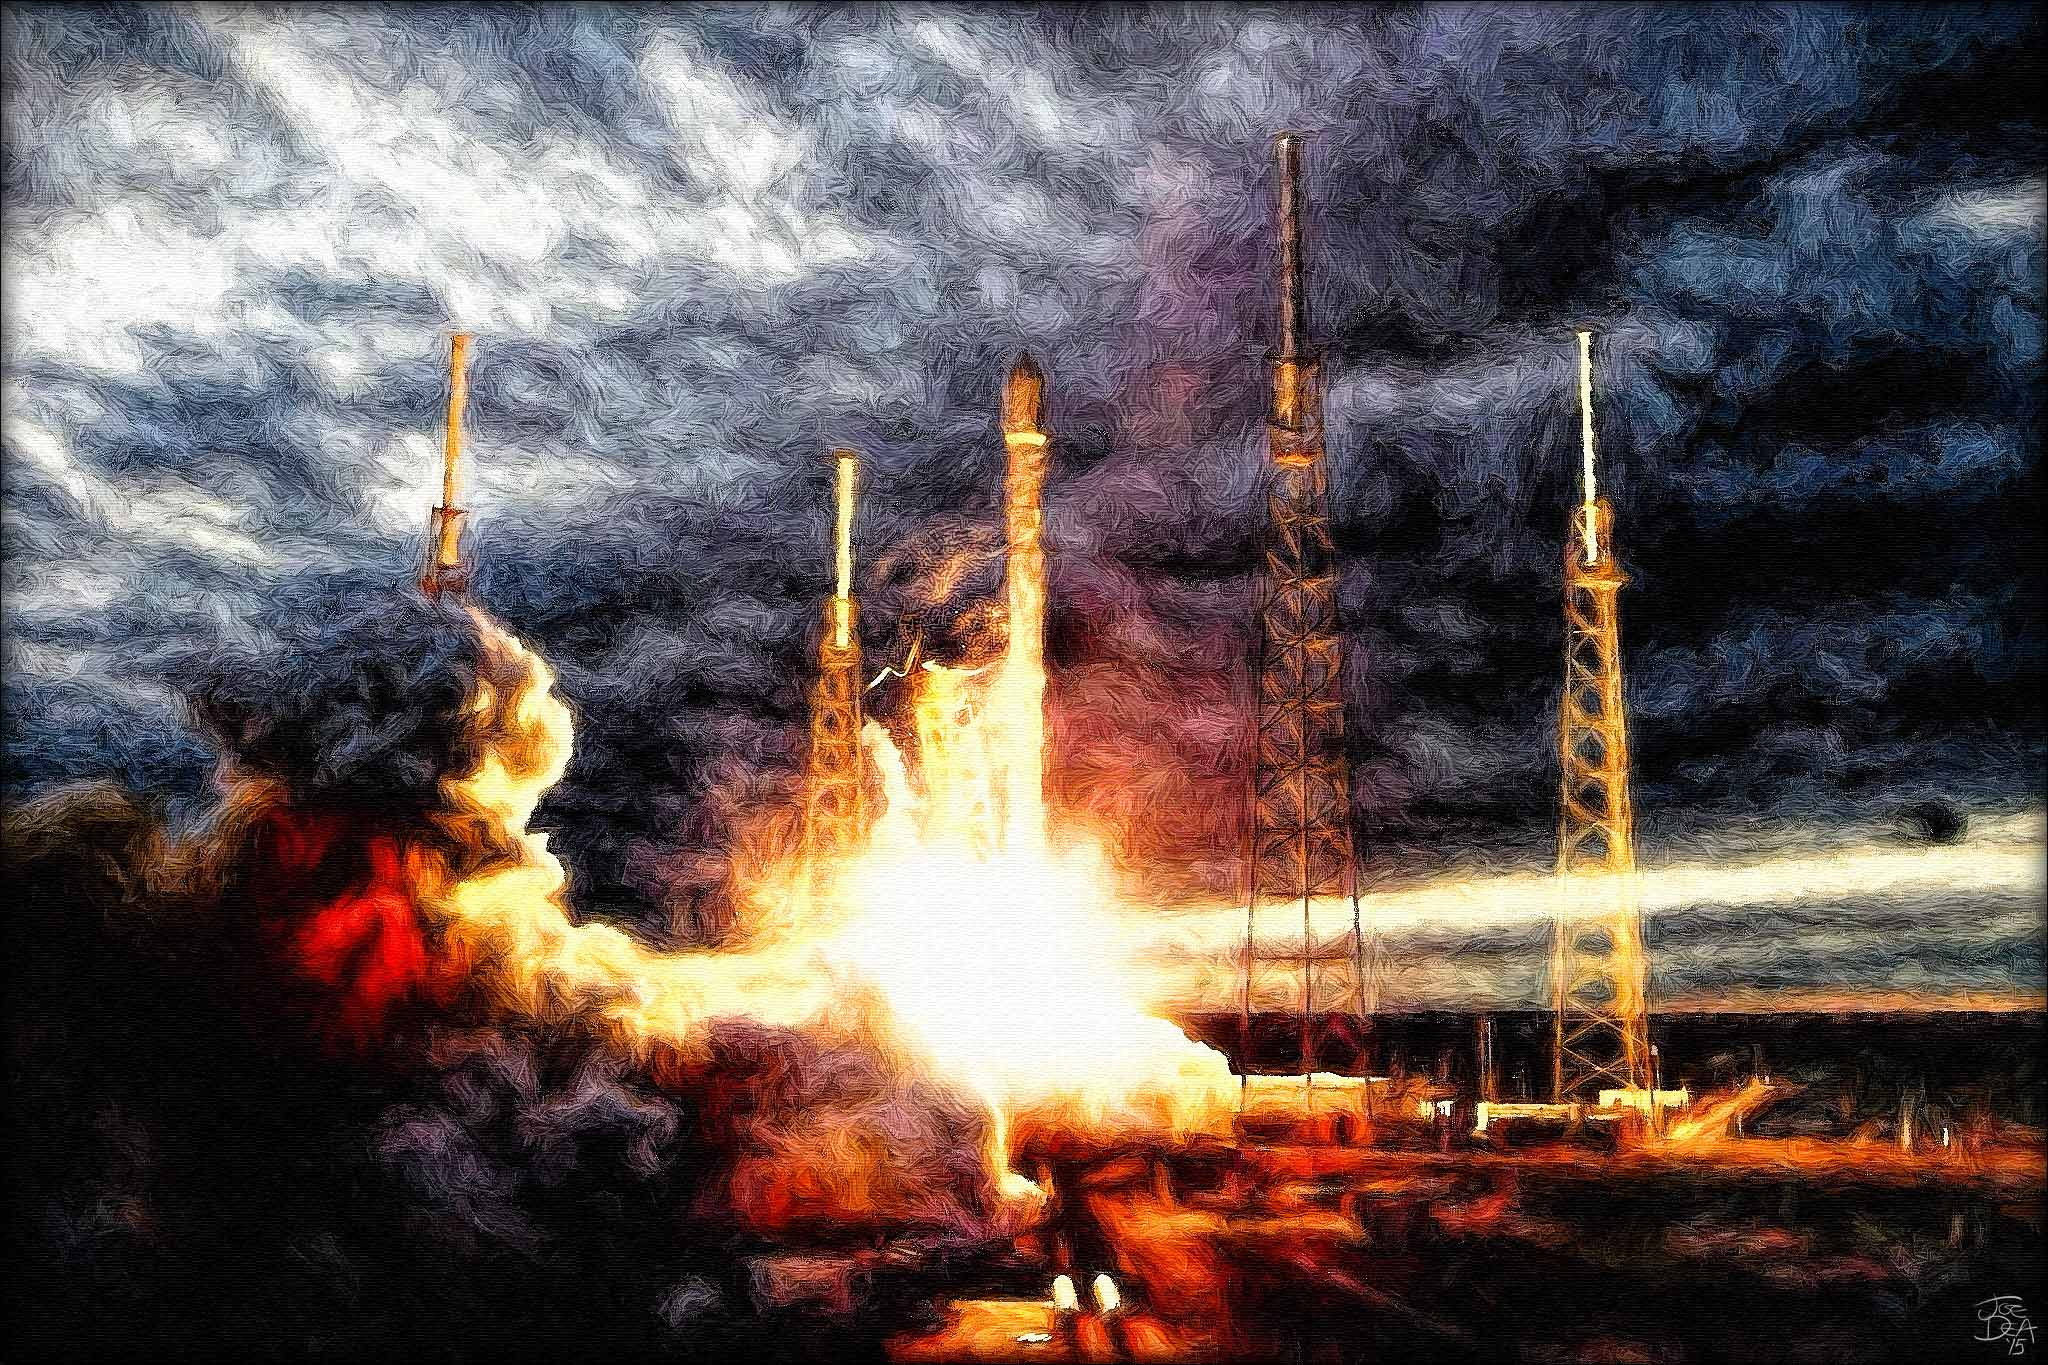 Joe-Dea-SpaceX-3-Painting-LB.jpg